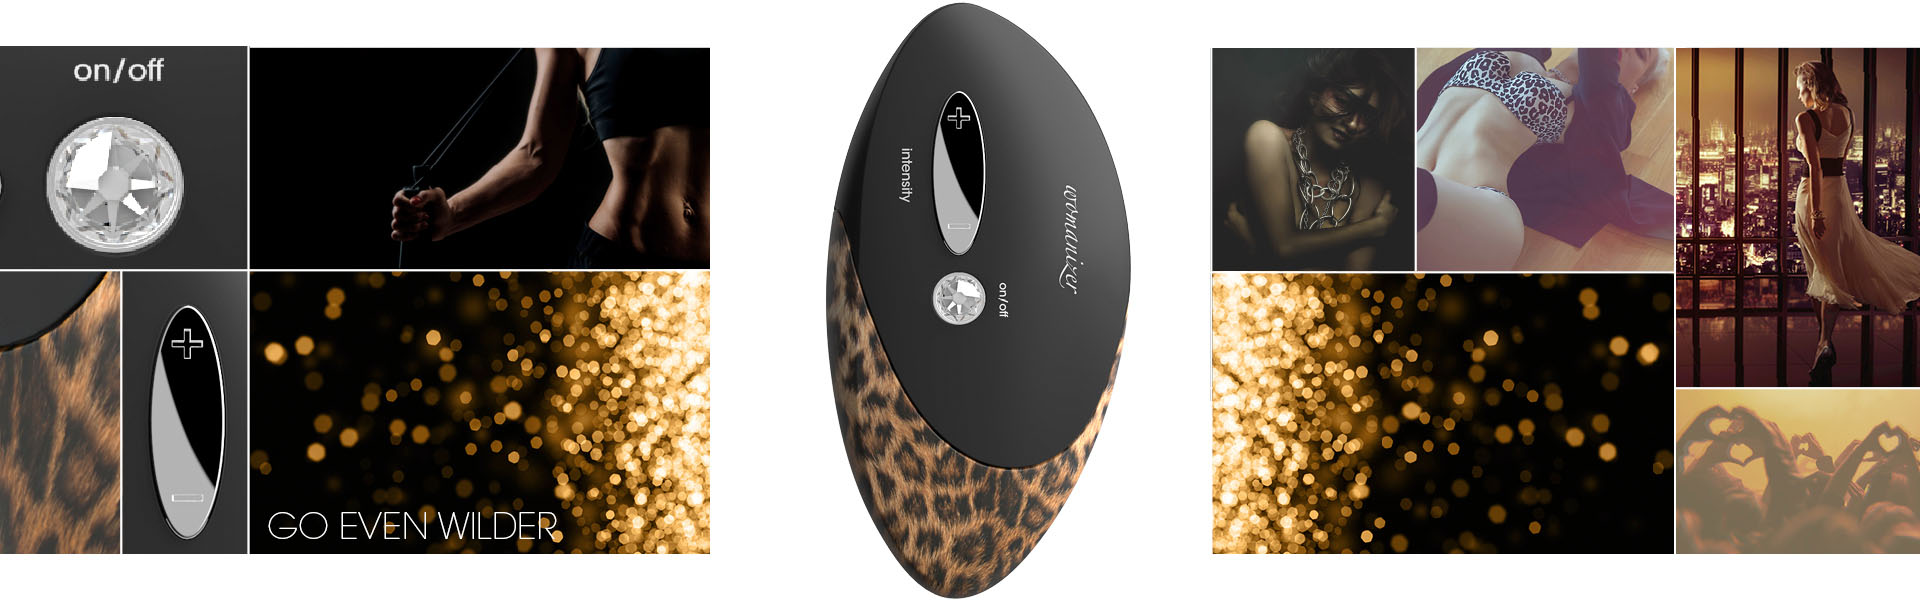 WOMANIZER:  Revolutionary Pleasure Air Technologie